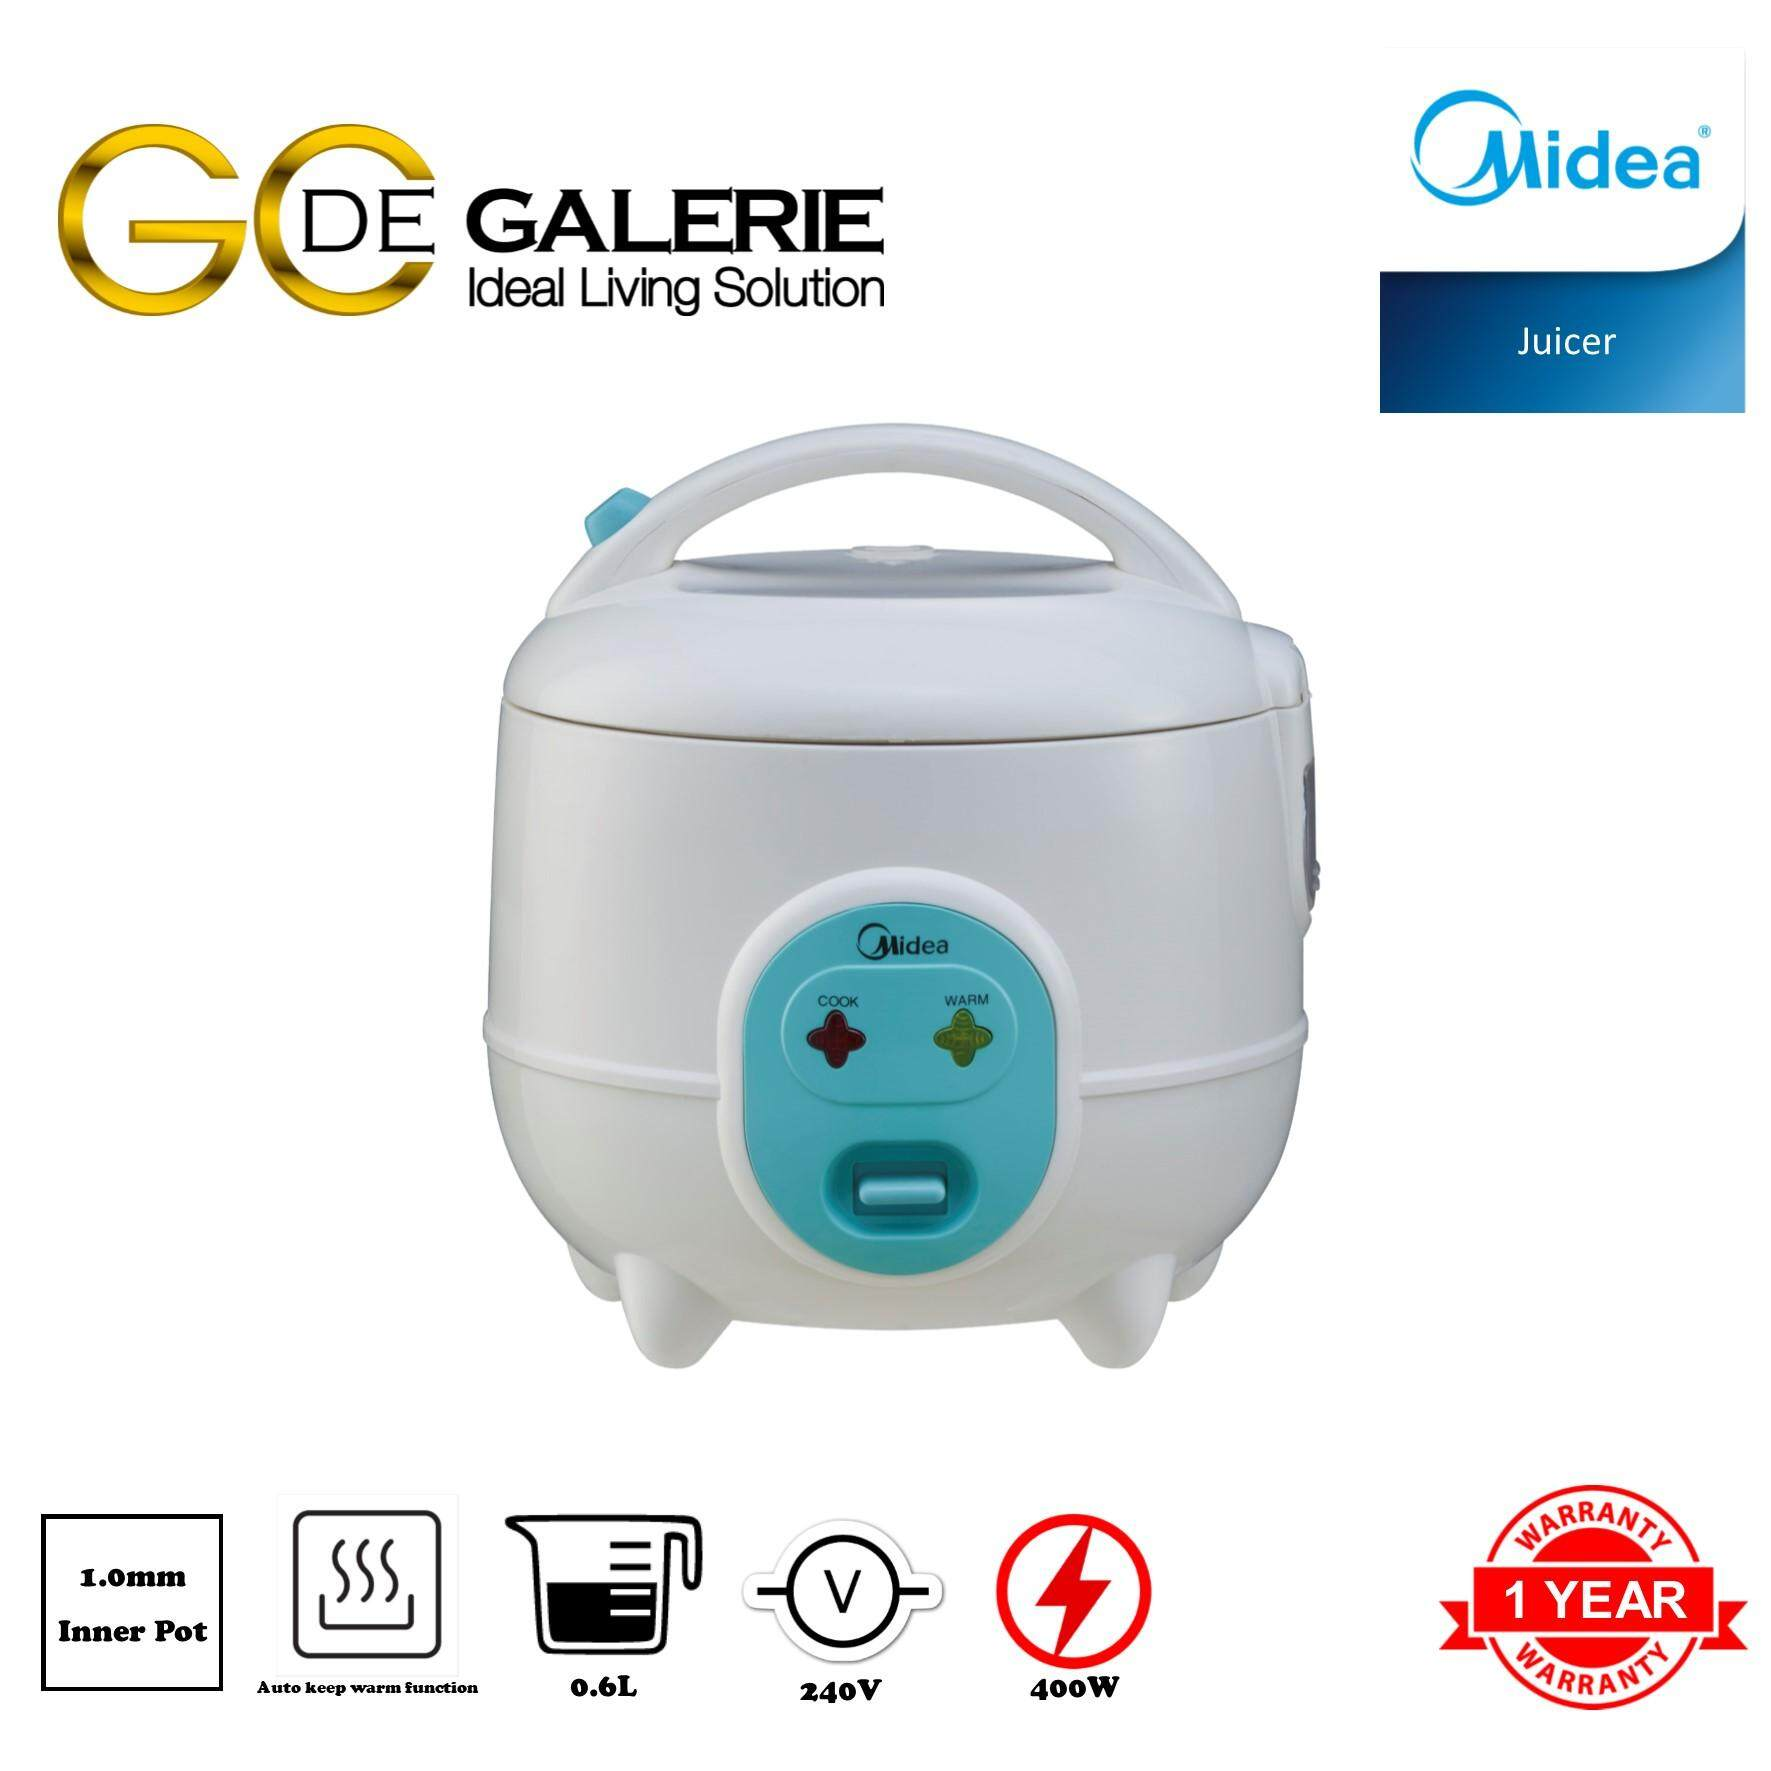 MINI JAR RICE COOKER MIDEA MR-CM06SB 0.6L BLUE